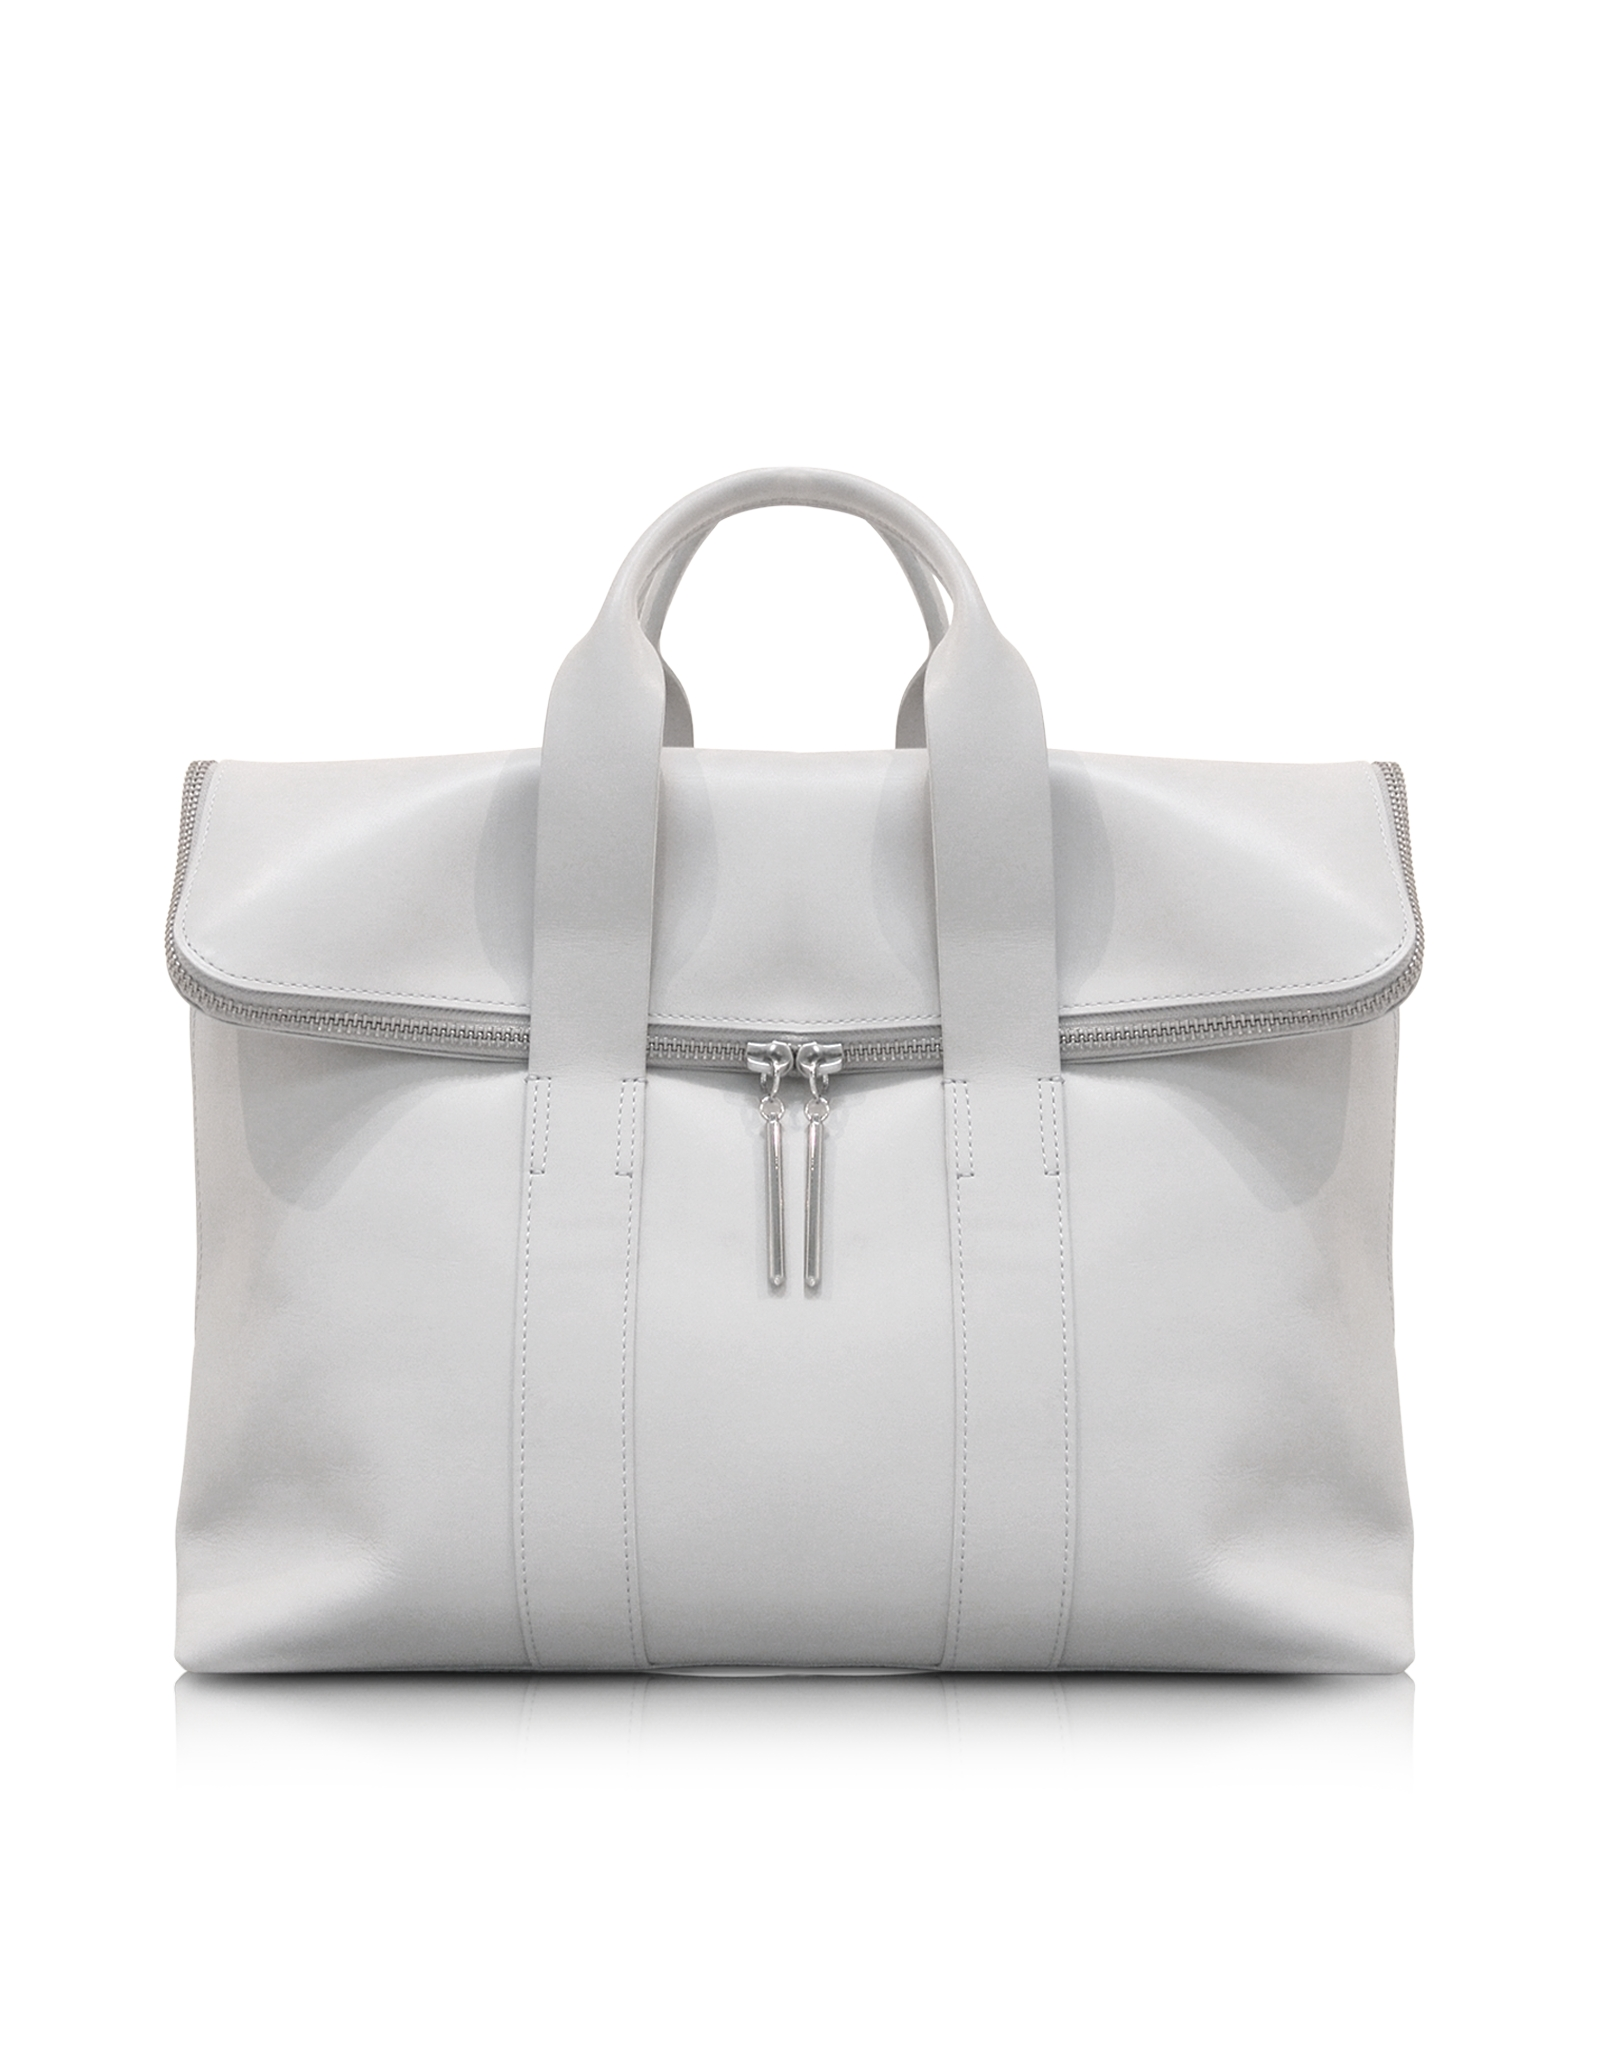 3 1 Phillip Lim 31 Hour Bag Light Gray Leather Tote In